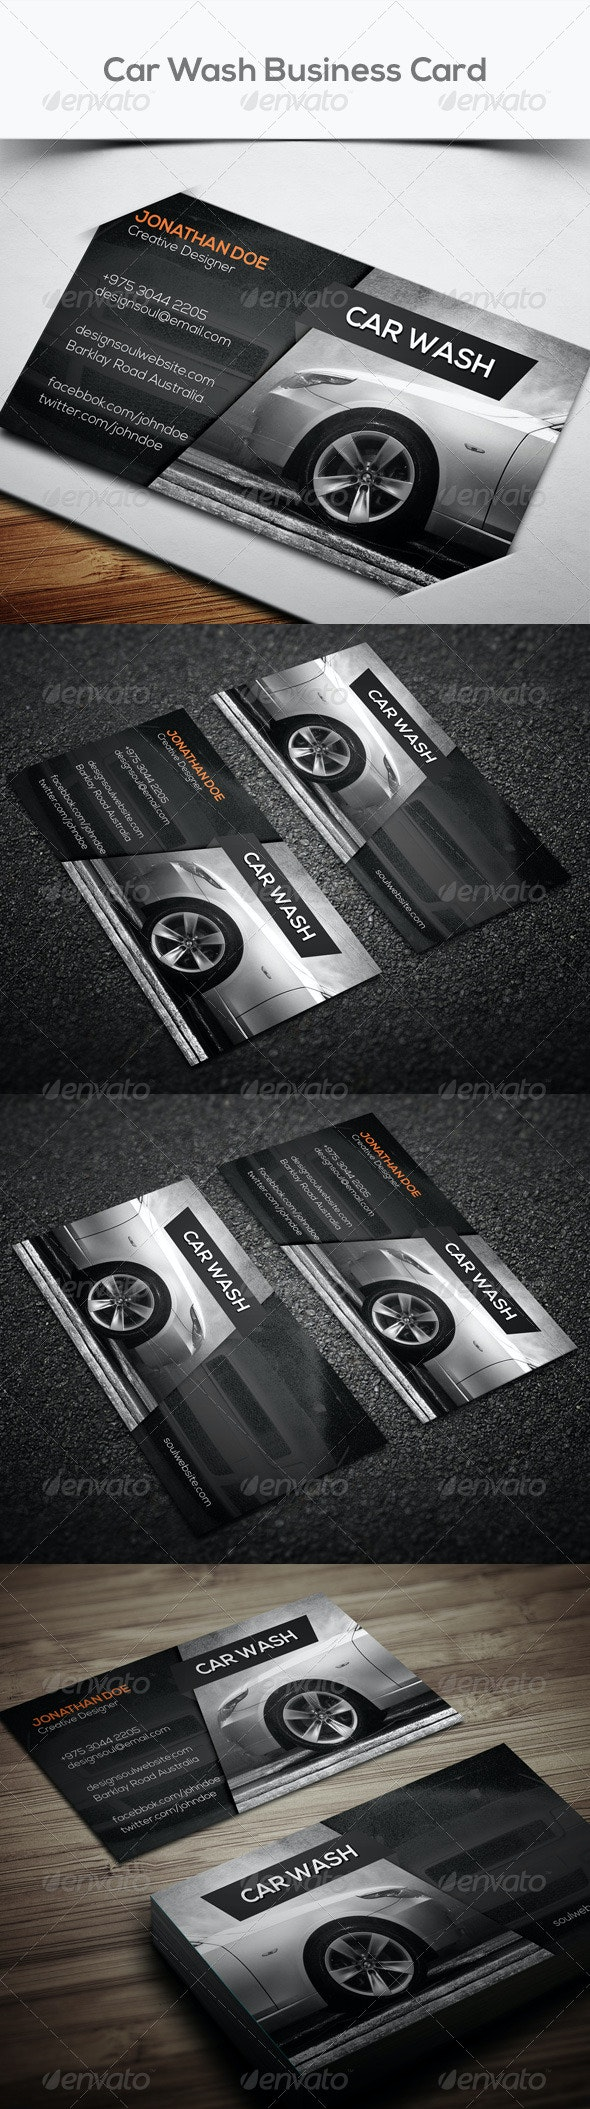 Car Wash Business Card - Corporate Business Cards